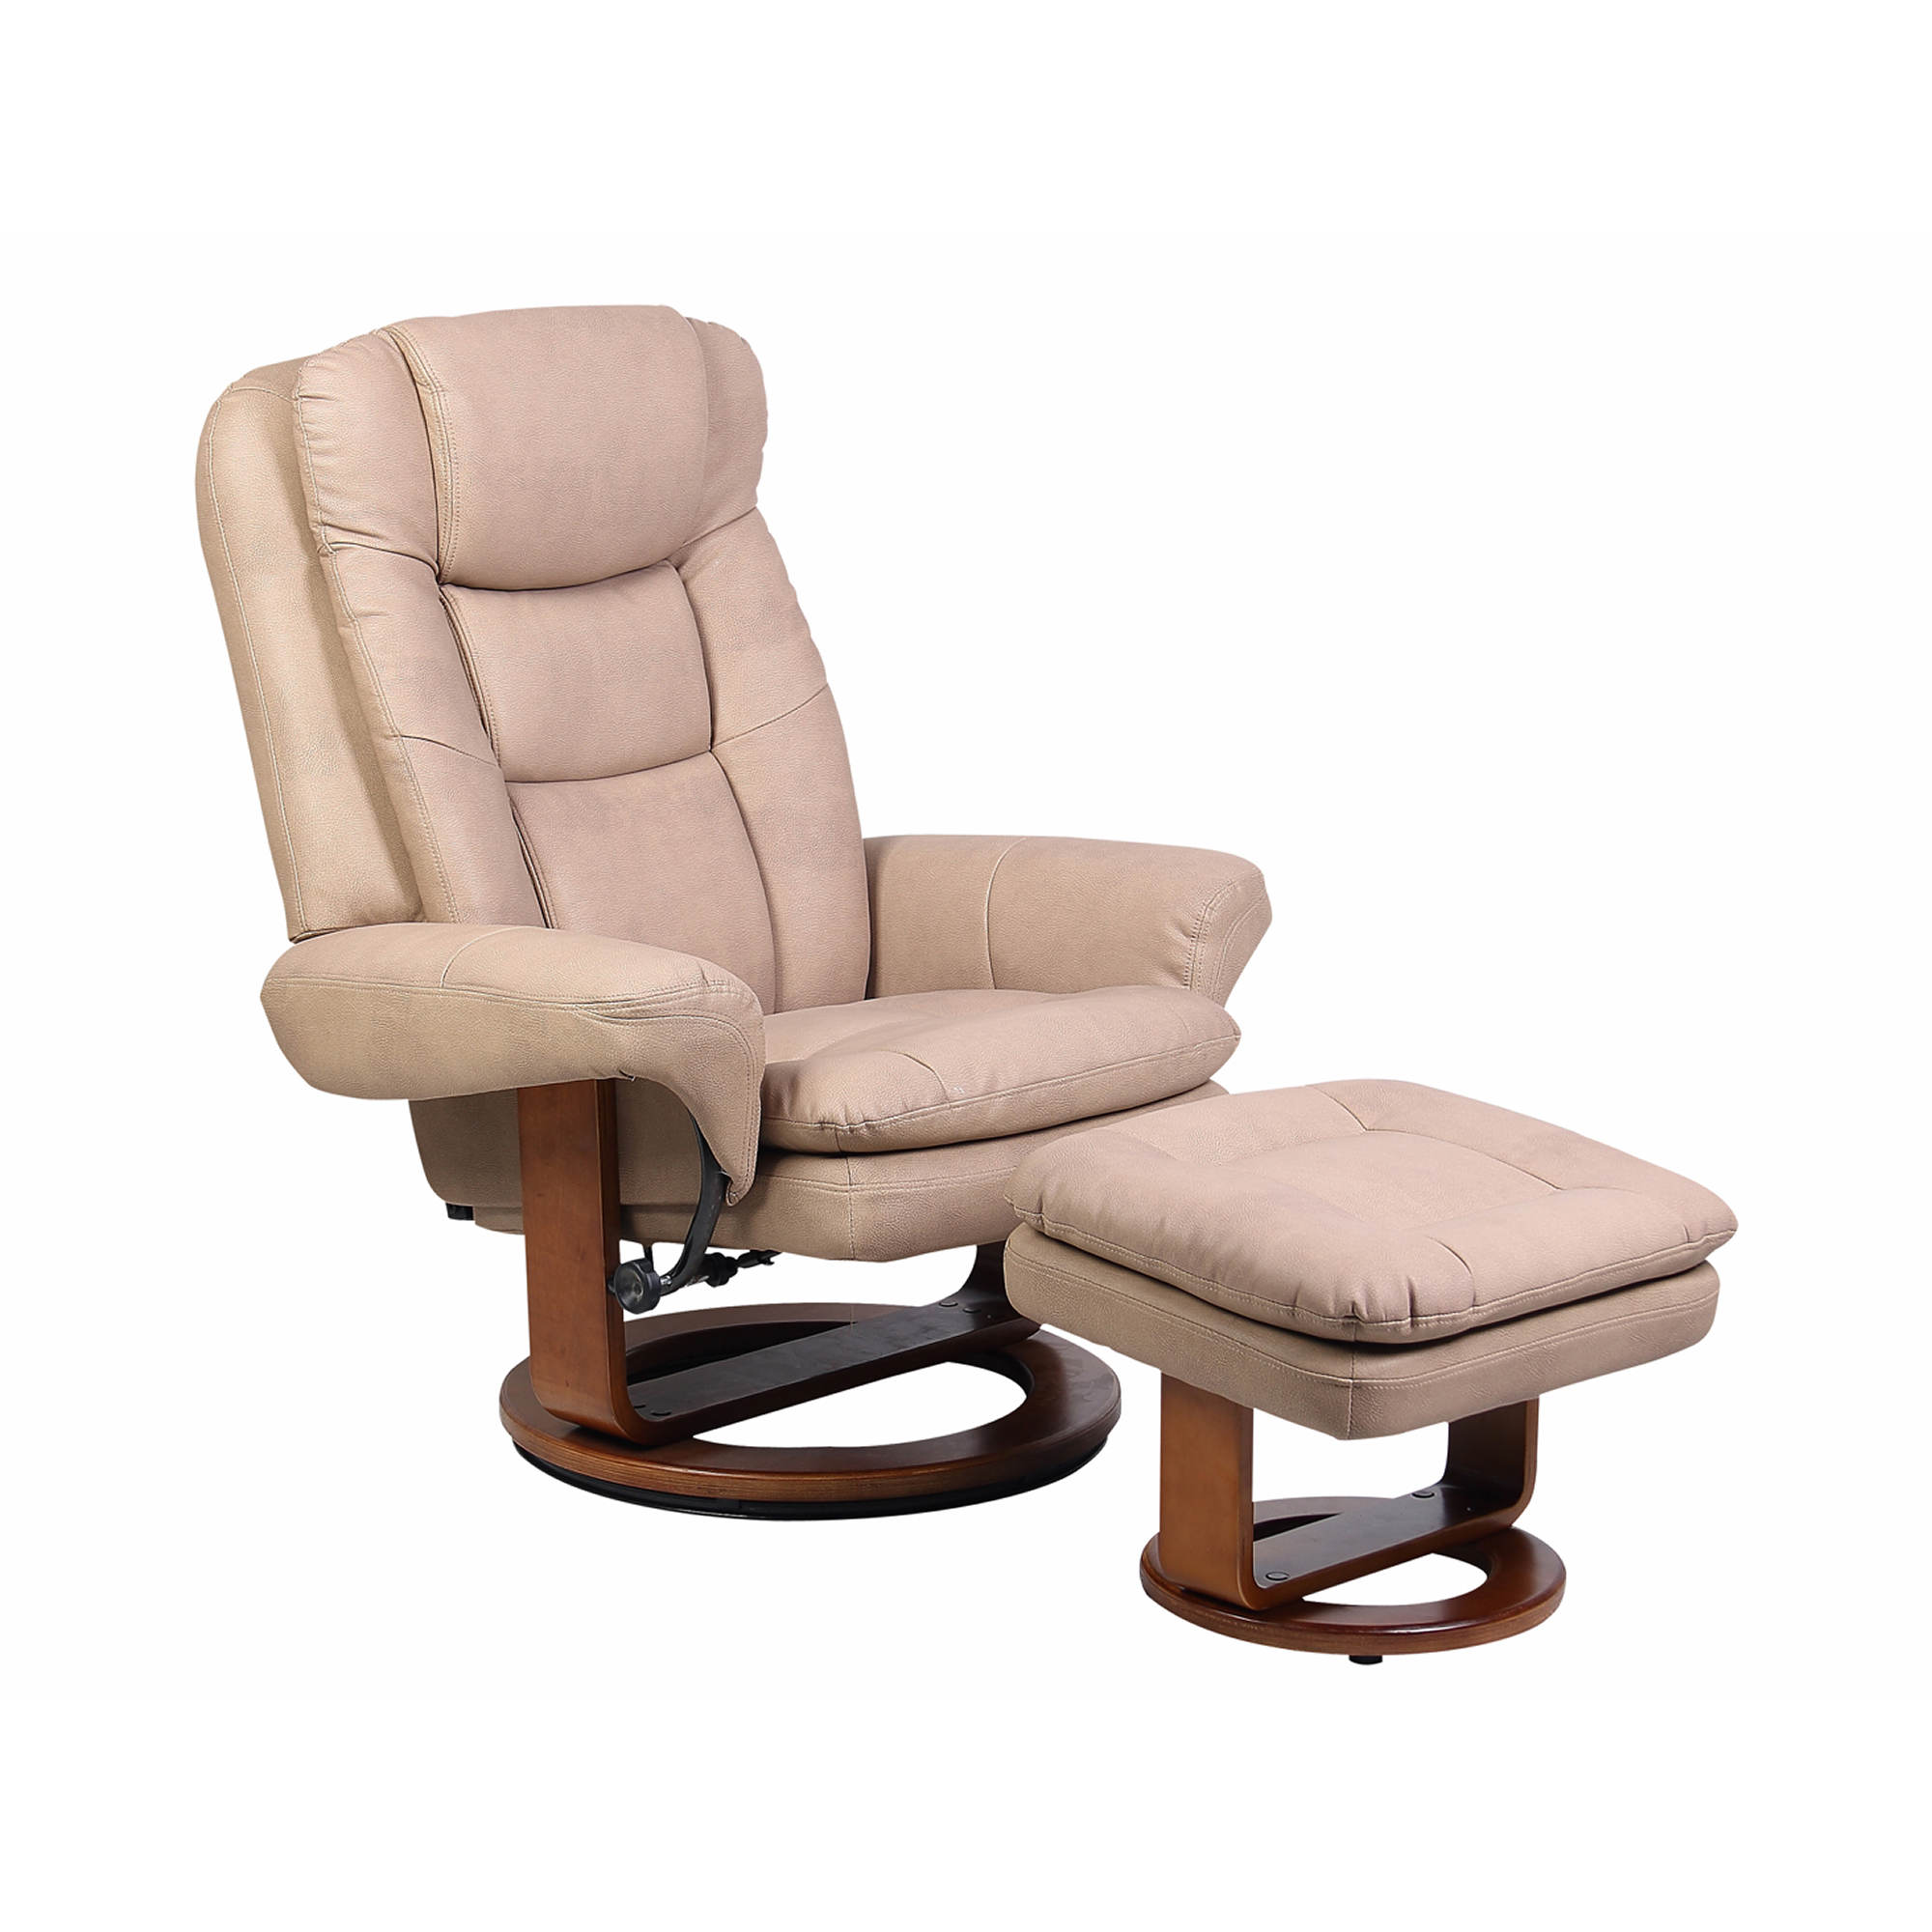 Mac Motion Nubuck Bonded Leather Swivel Recliner with Ottoman - Stone/Walnut